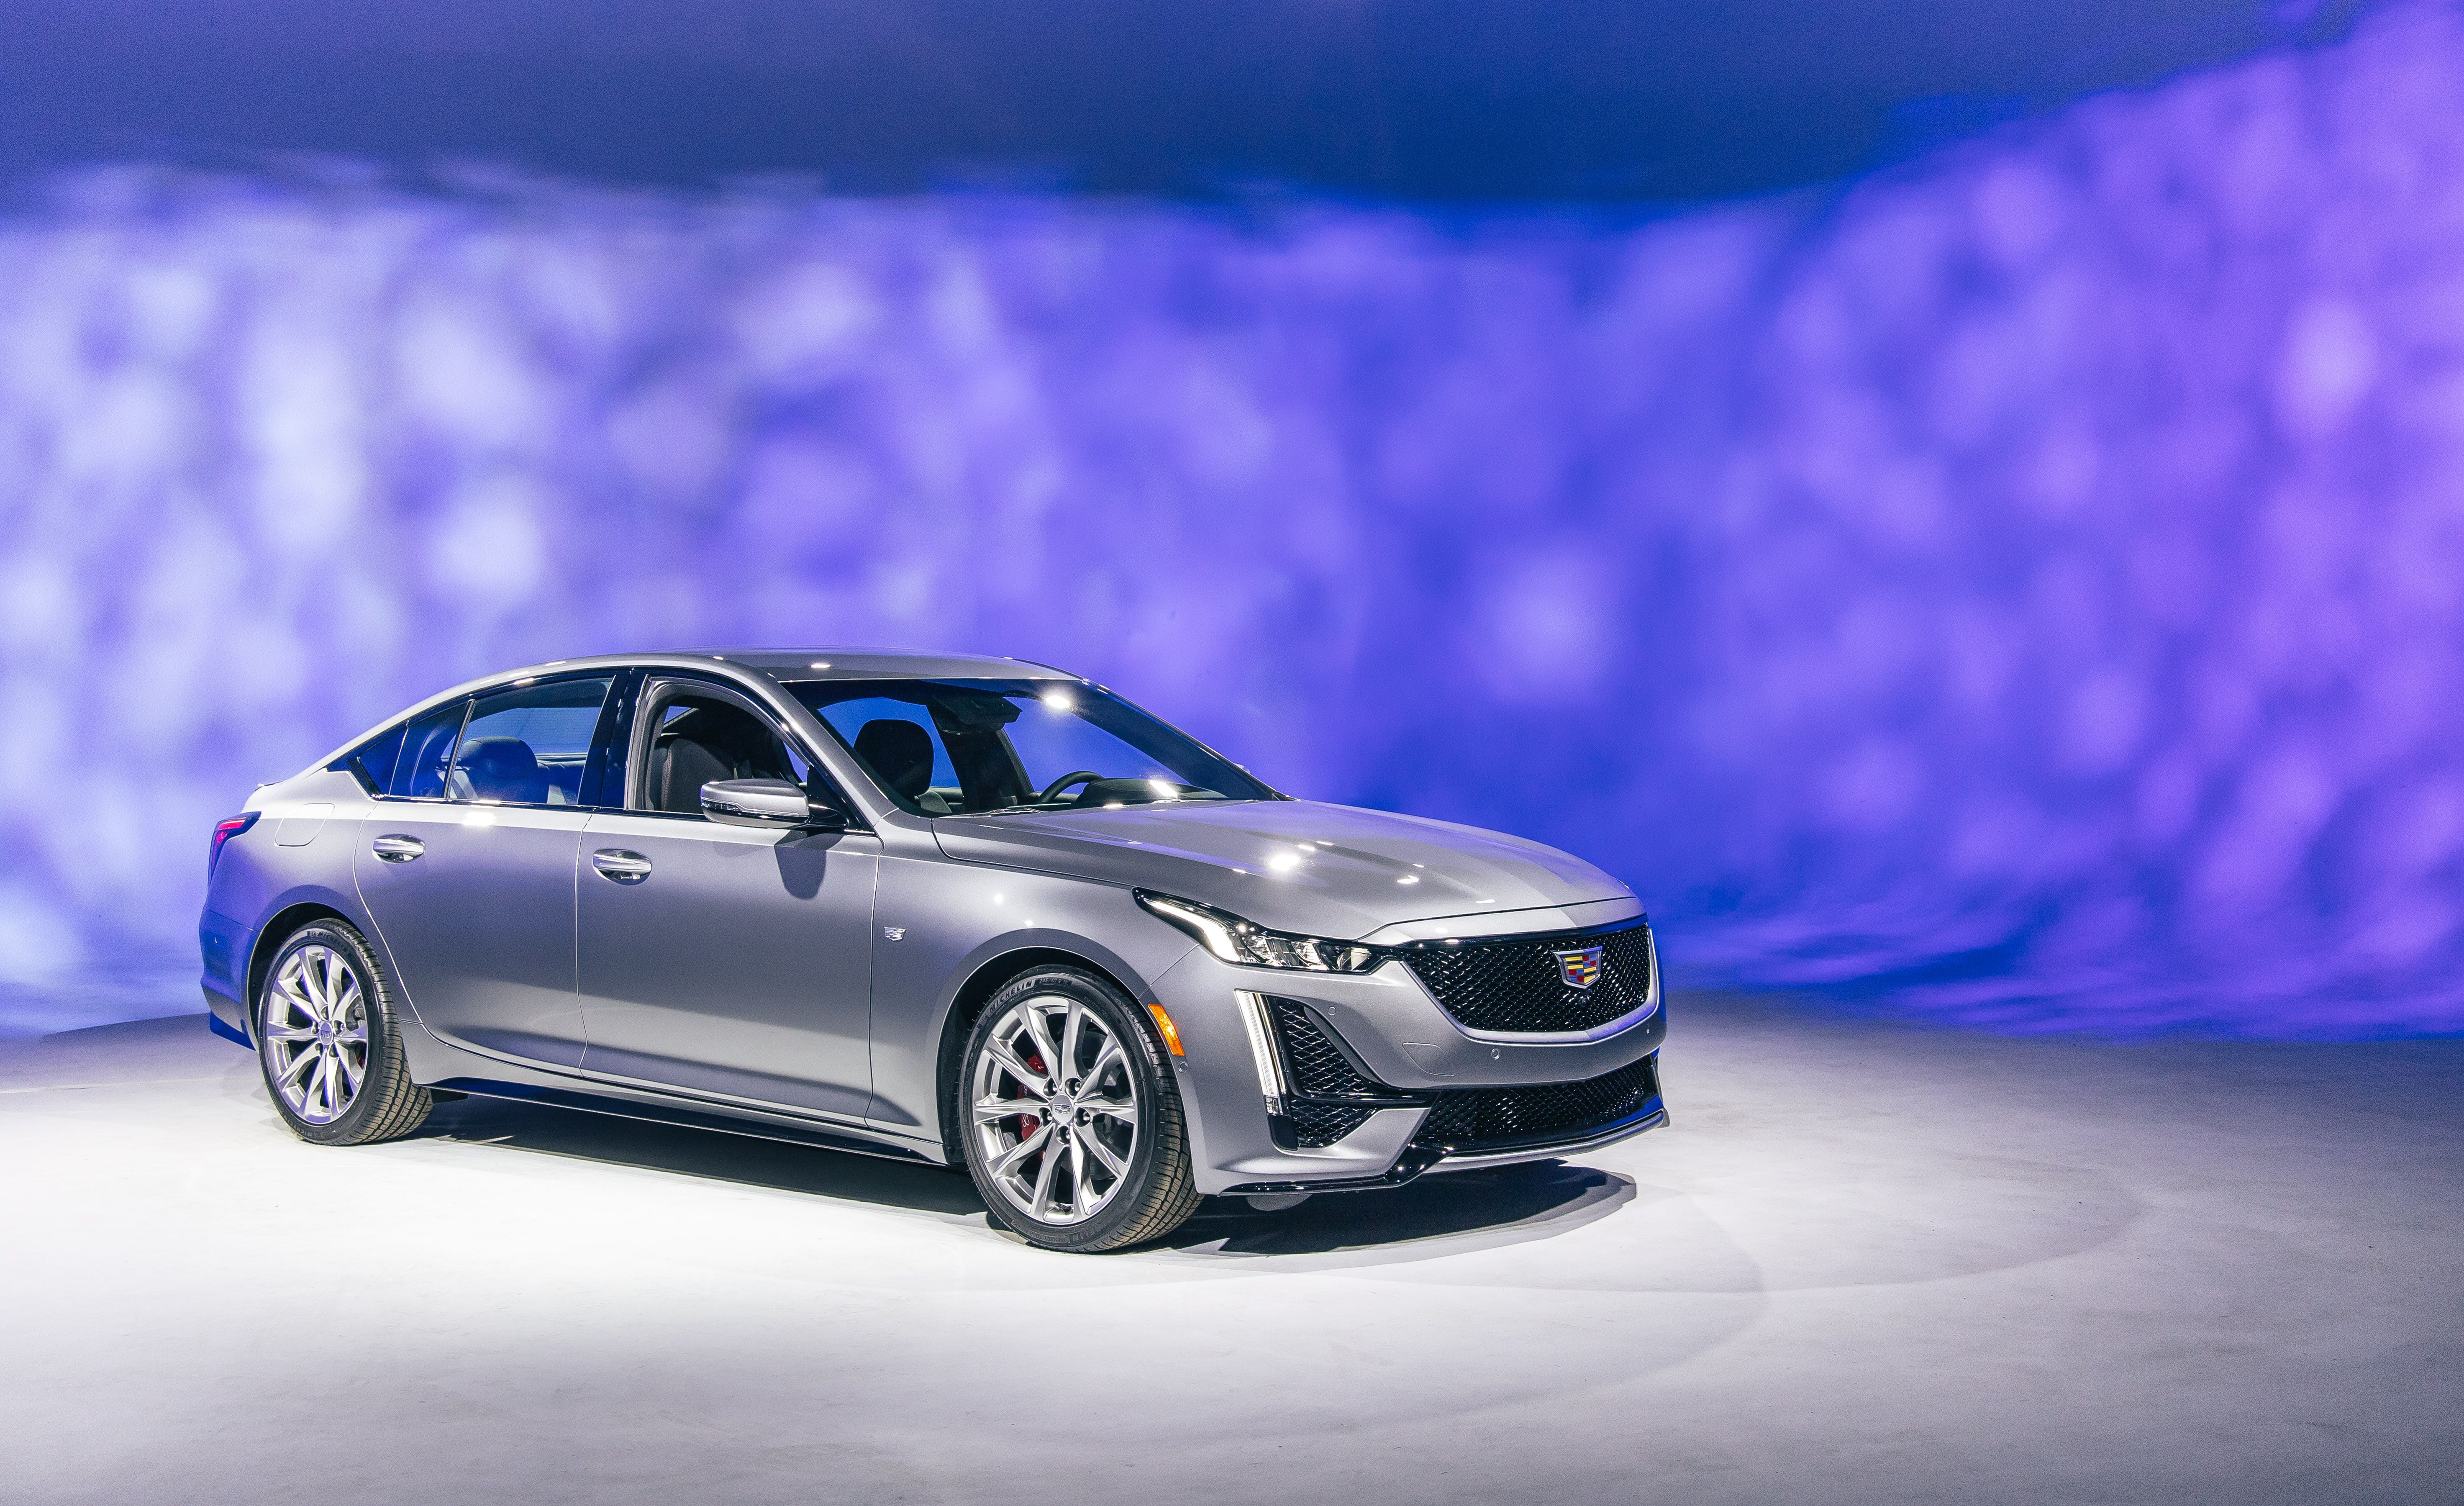 Comments on: The 2020 Cadillac CT5 Tries to Do What the ATS and CTS